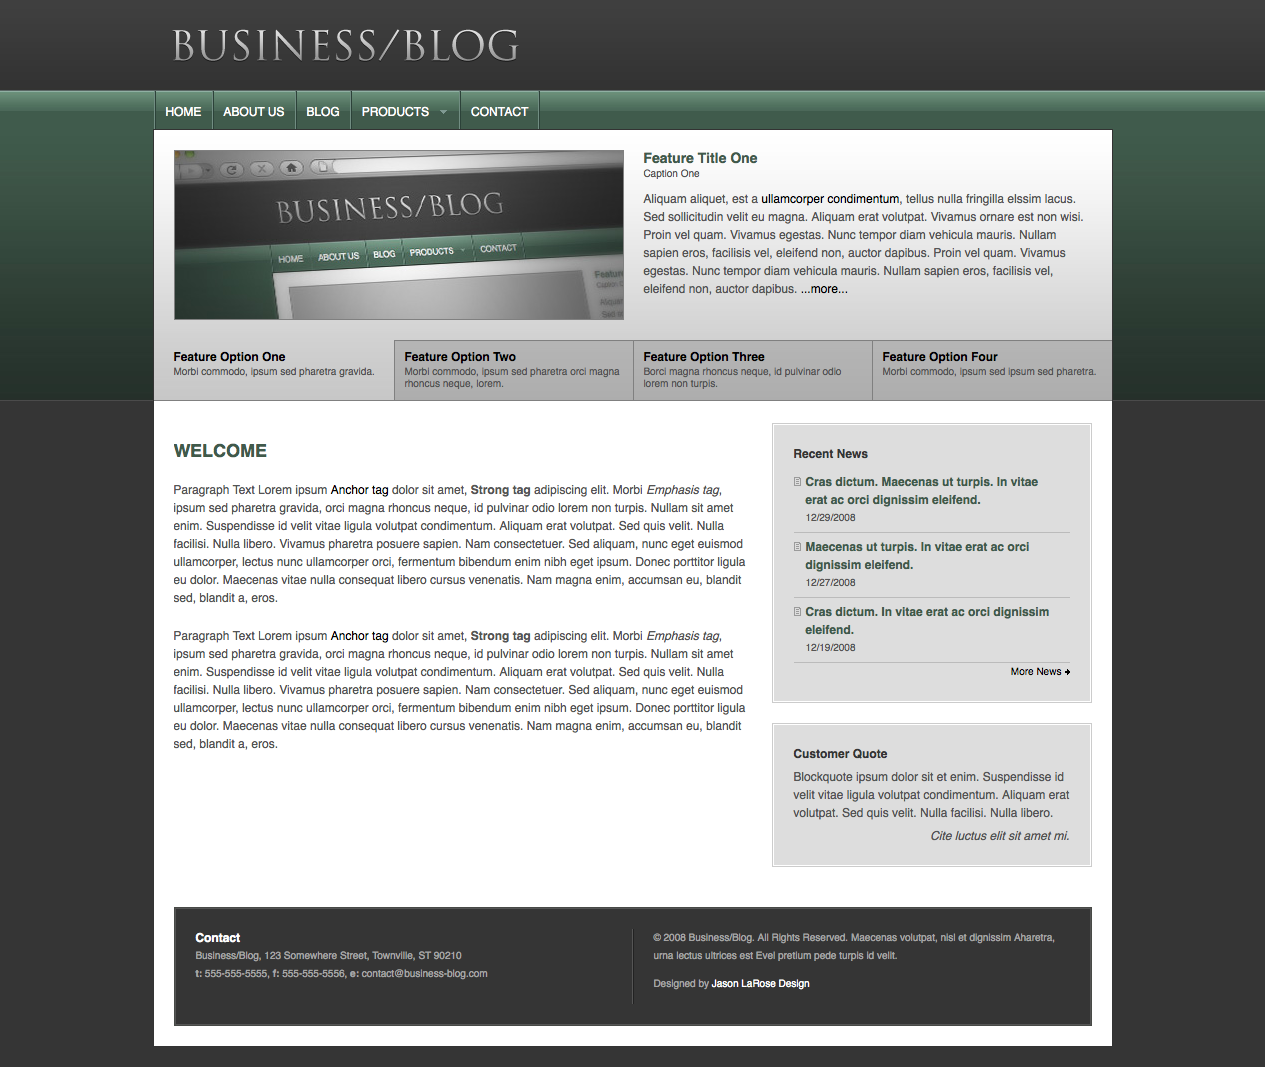 Business/Blog - This is the home page.